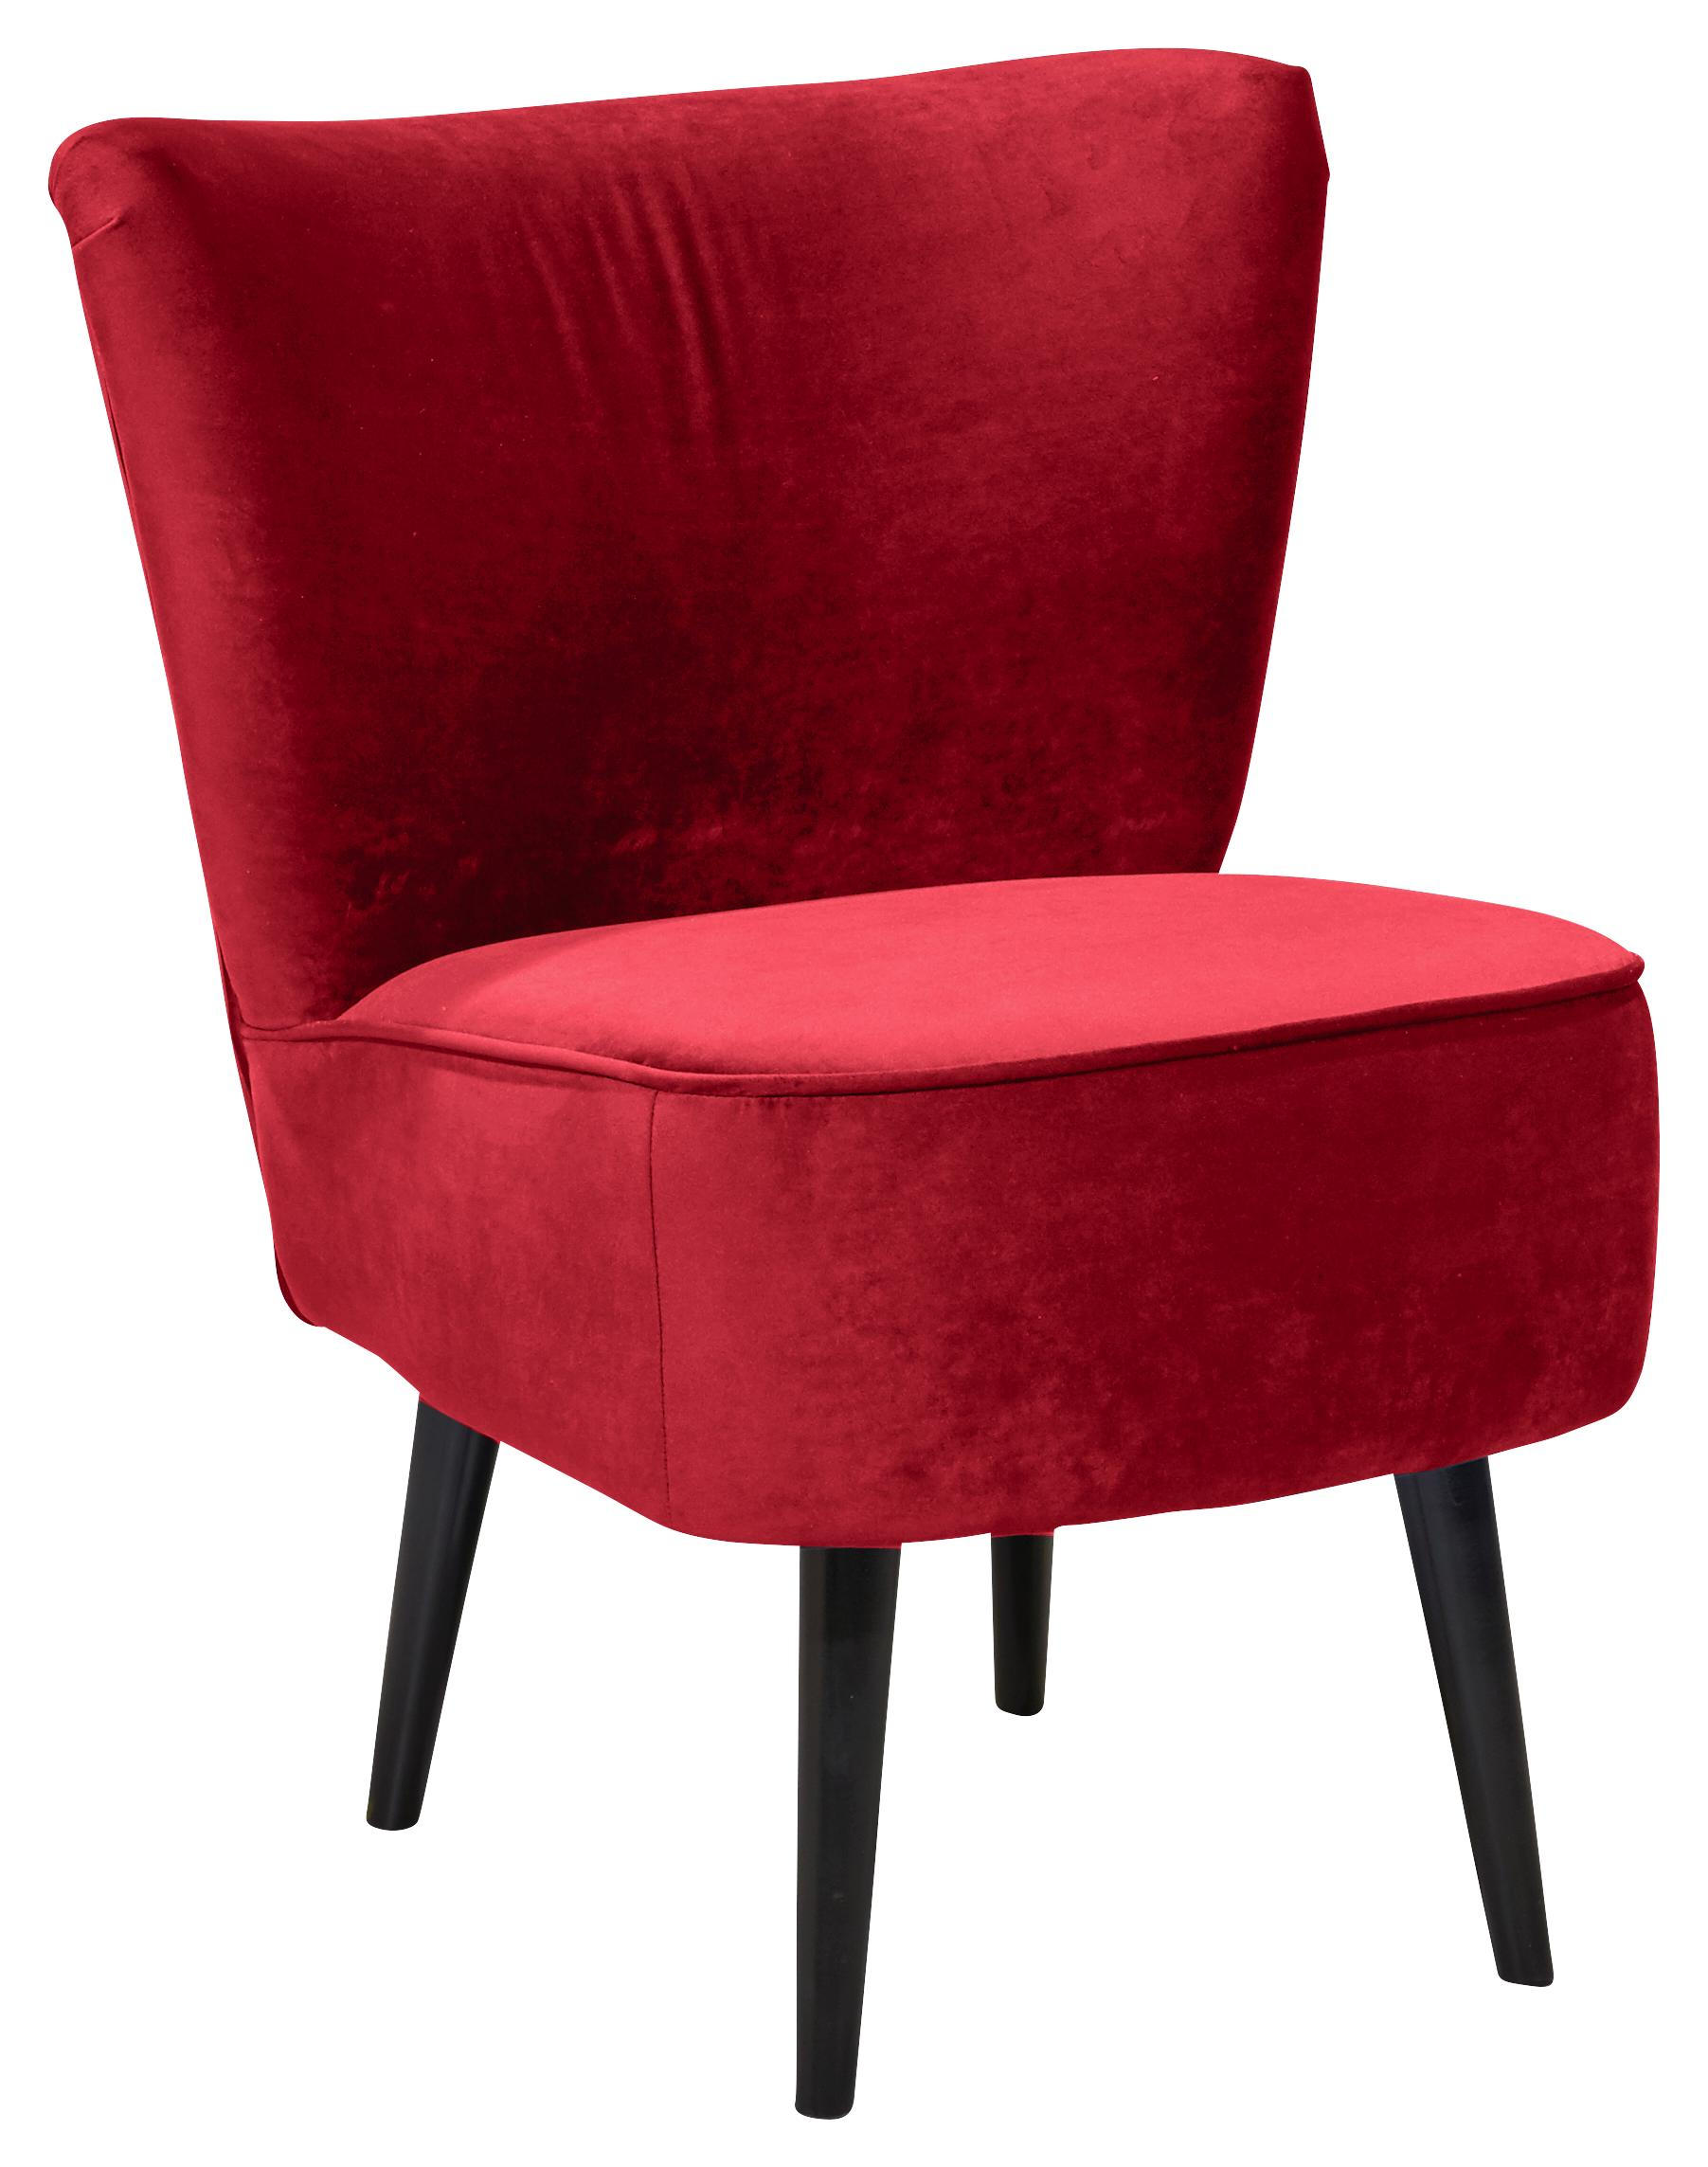 Sessel In Rot Sessel Rot